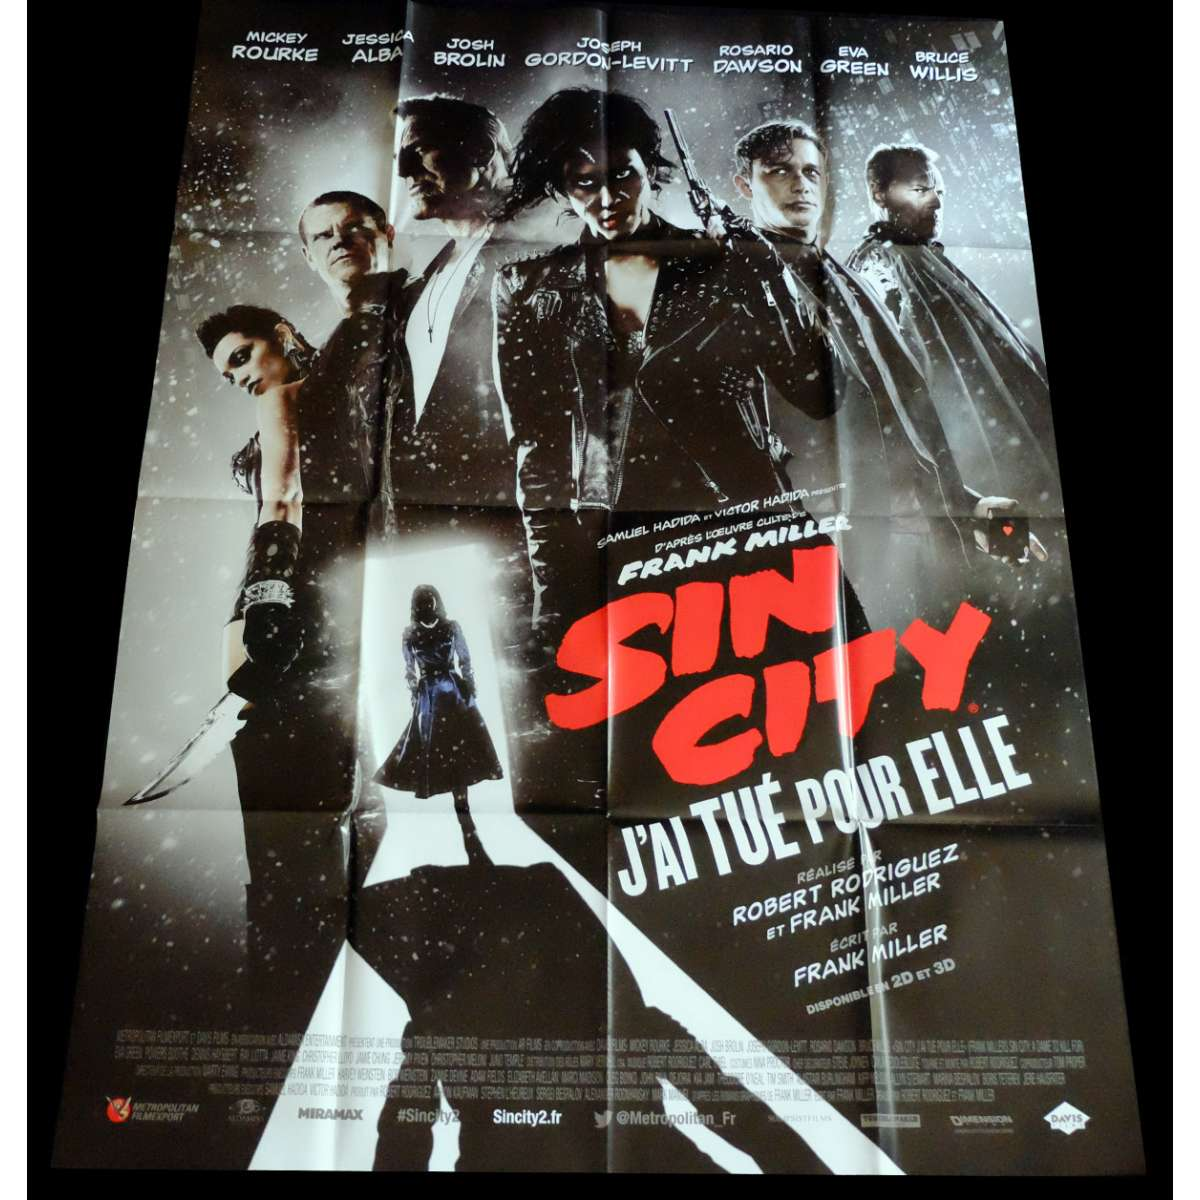 w2a1 genres and genre film sin Airplay this week in monitor: r&b radio, indie acts and 'nookie' p 22 the bumpy rise of cotter's 'star' p 33 may 14, 2004 we listen to radio volume 12 no 20 $699 indecency's e.